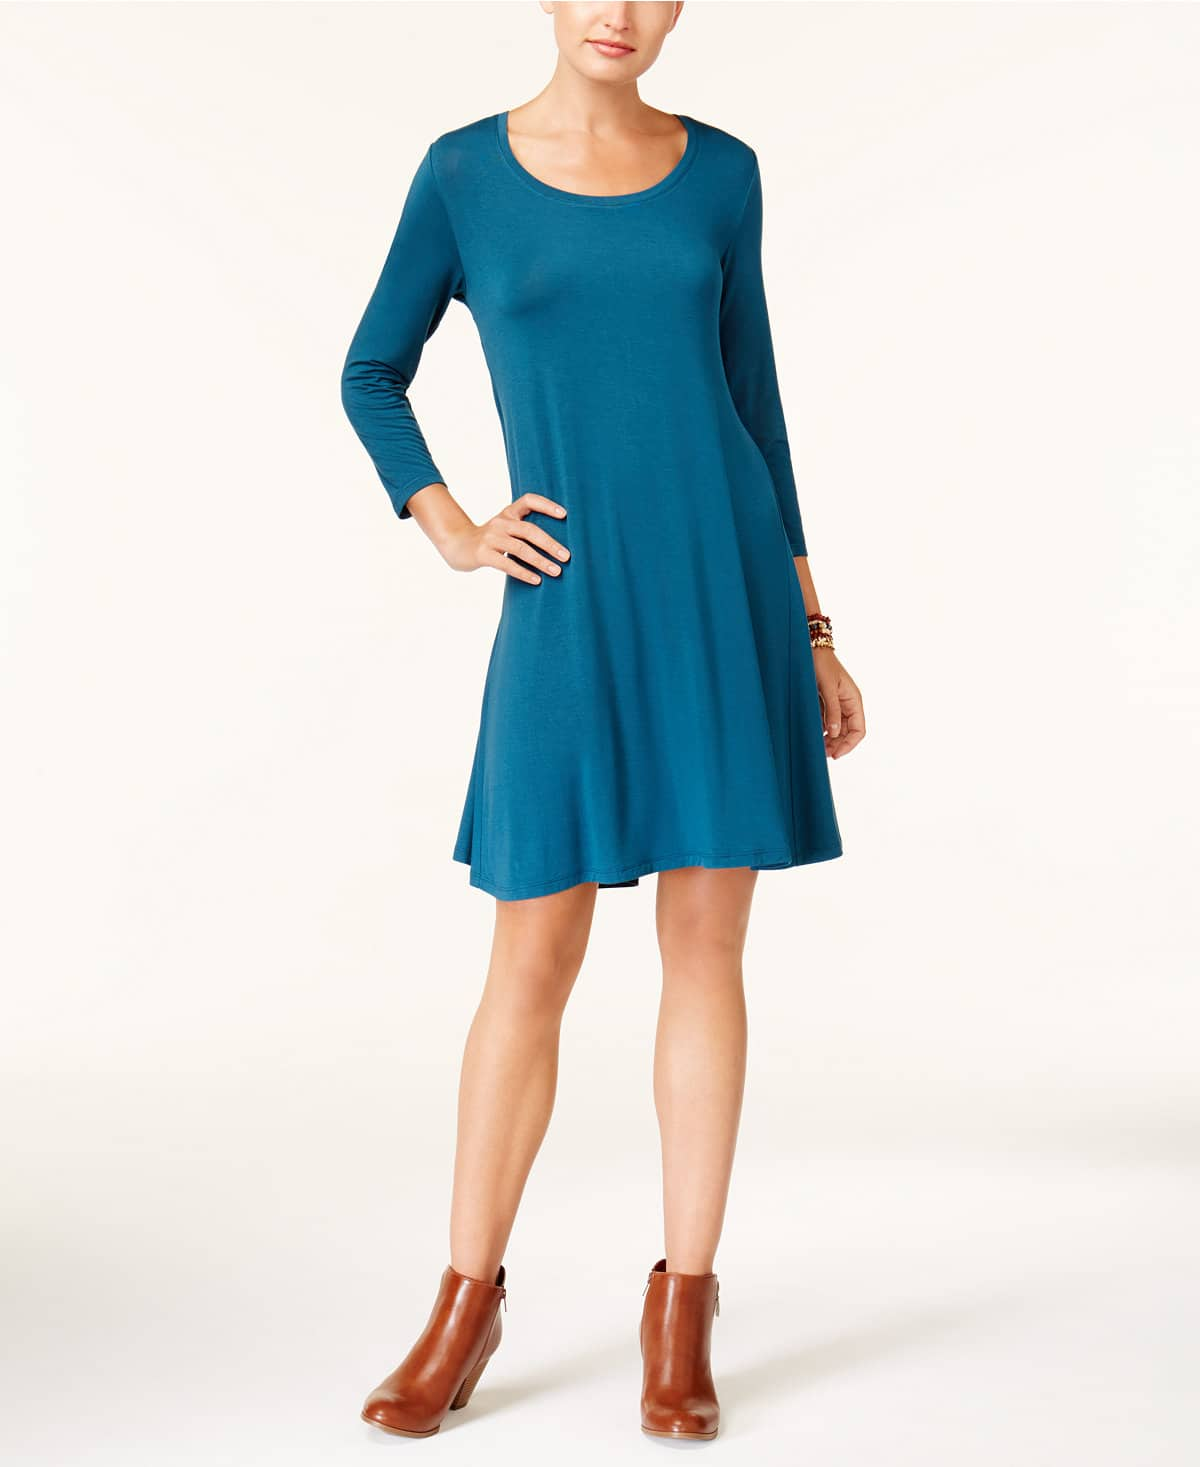 Style & Co Swing Dress - $29.74 + FS on orders over $49